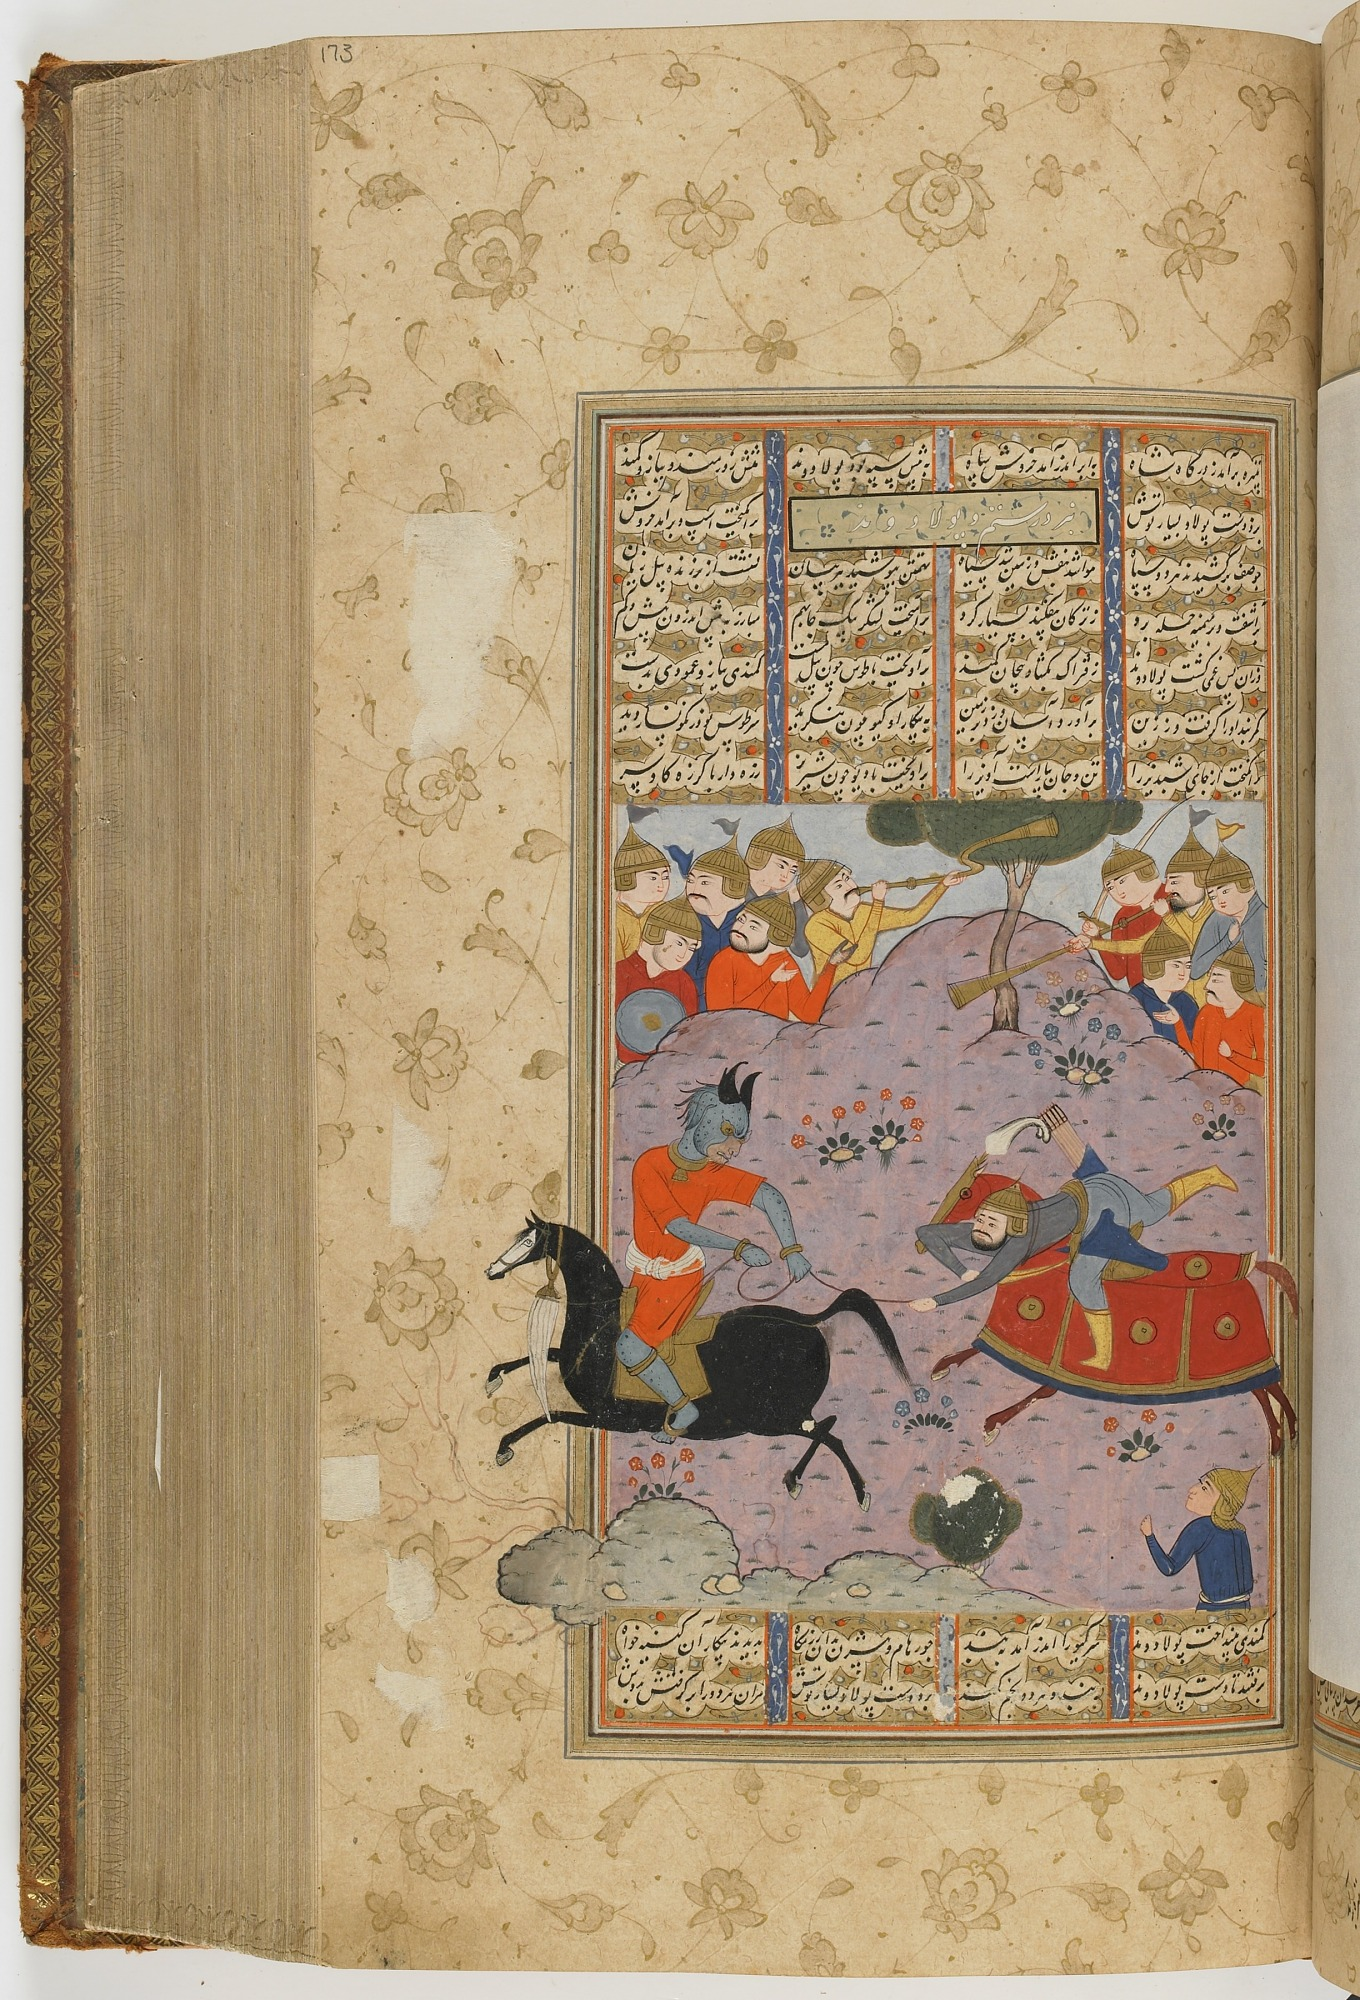 folio 173 recto: The Shahnama (Book of kings) by Firdausi (d. 1020)